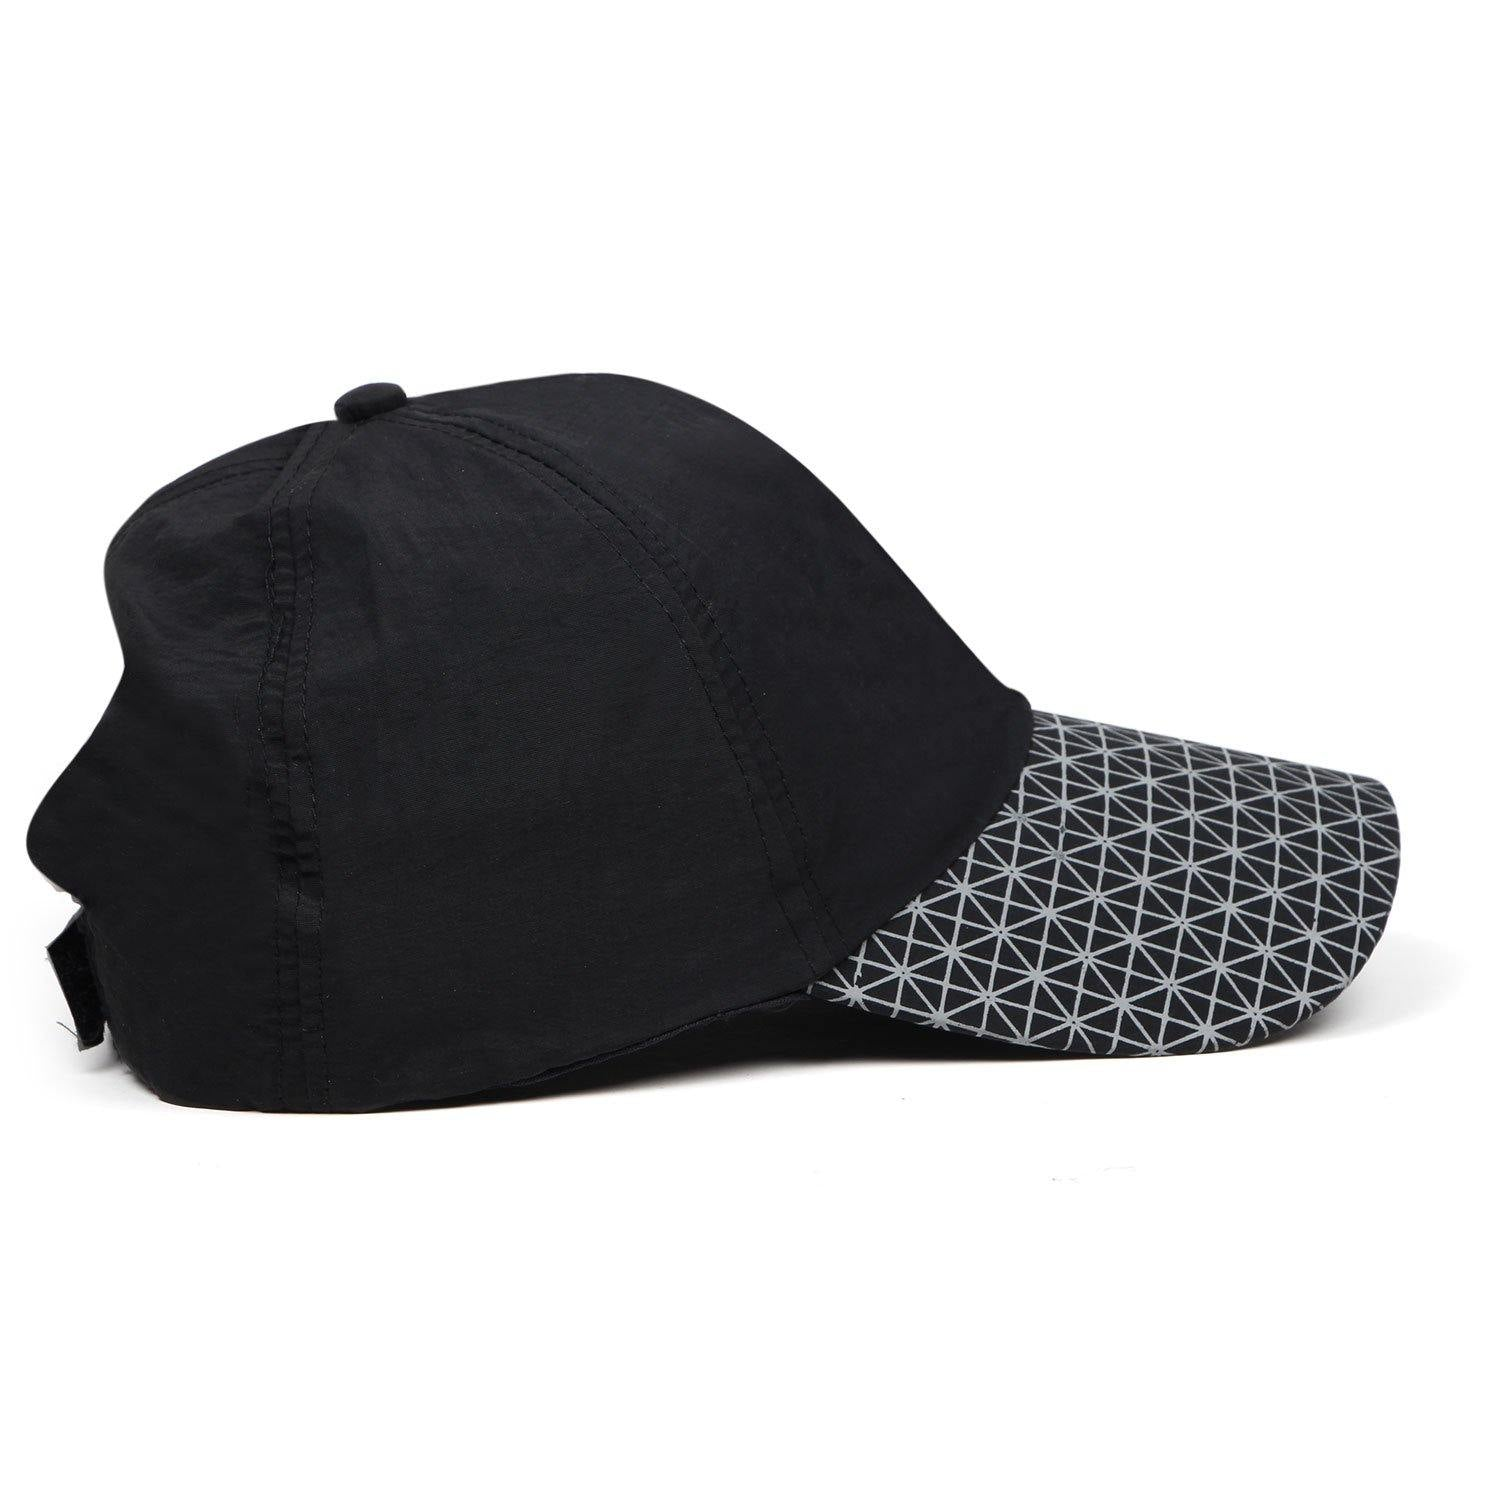 Solid Cotton Adjustable Summer sports Cap for Men - Black